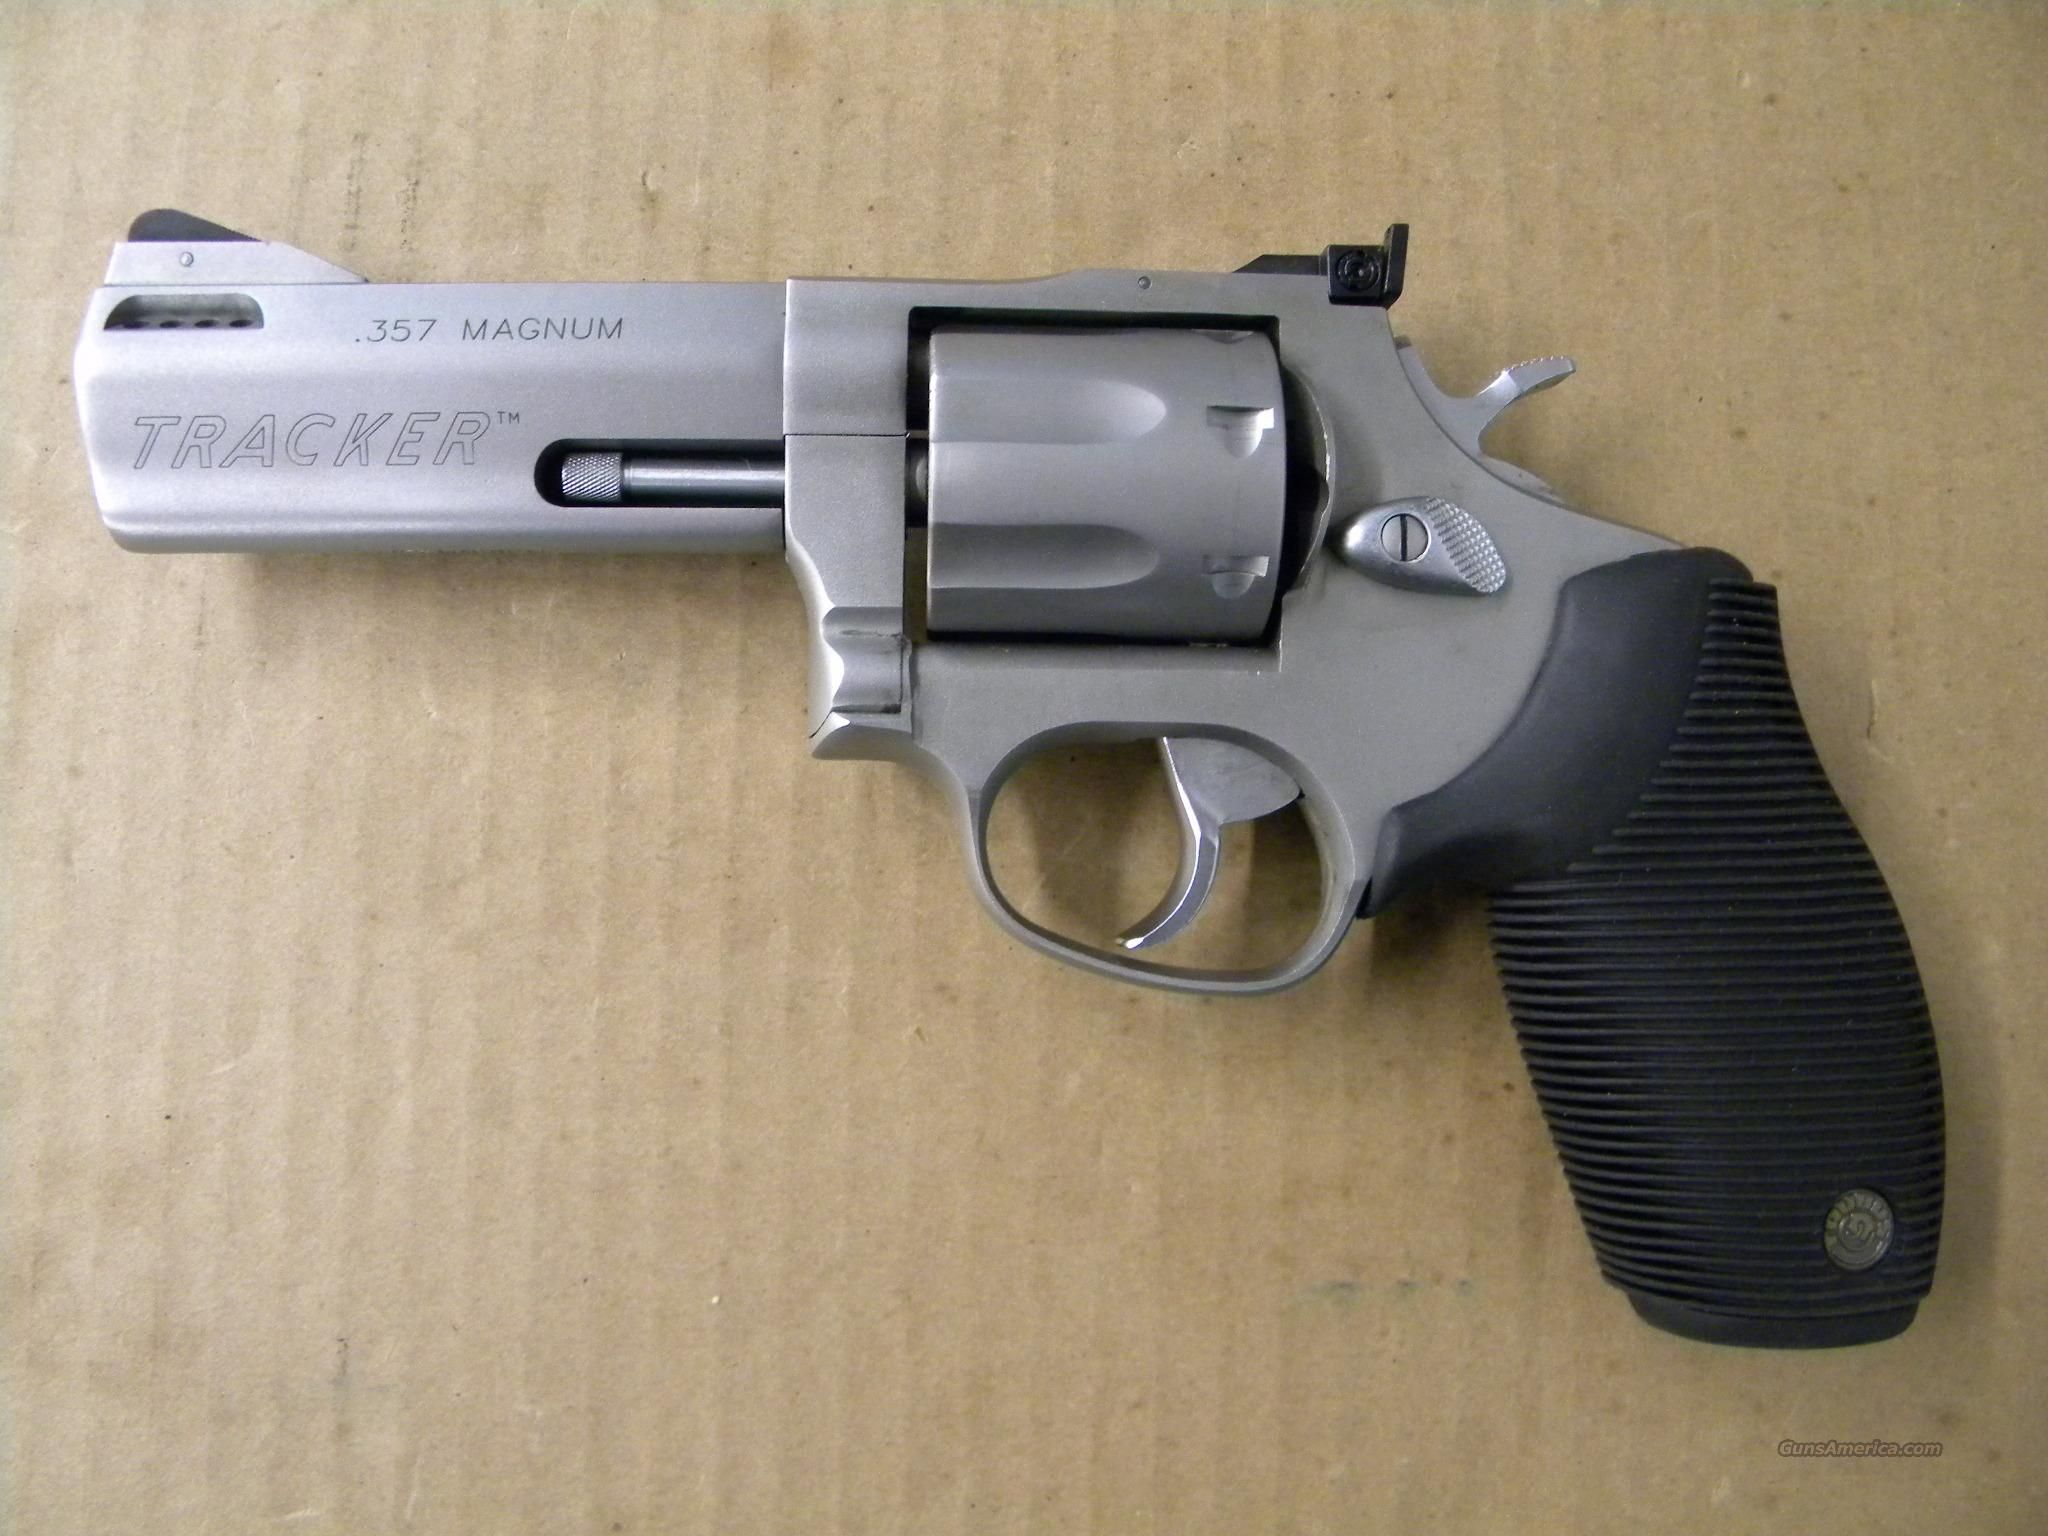 Taurus Tracker Stainless 7 Shot  357 Magnum Revolver | armed and